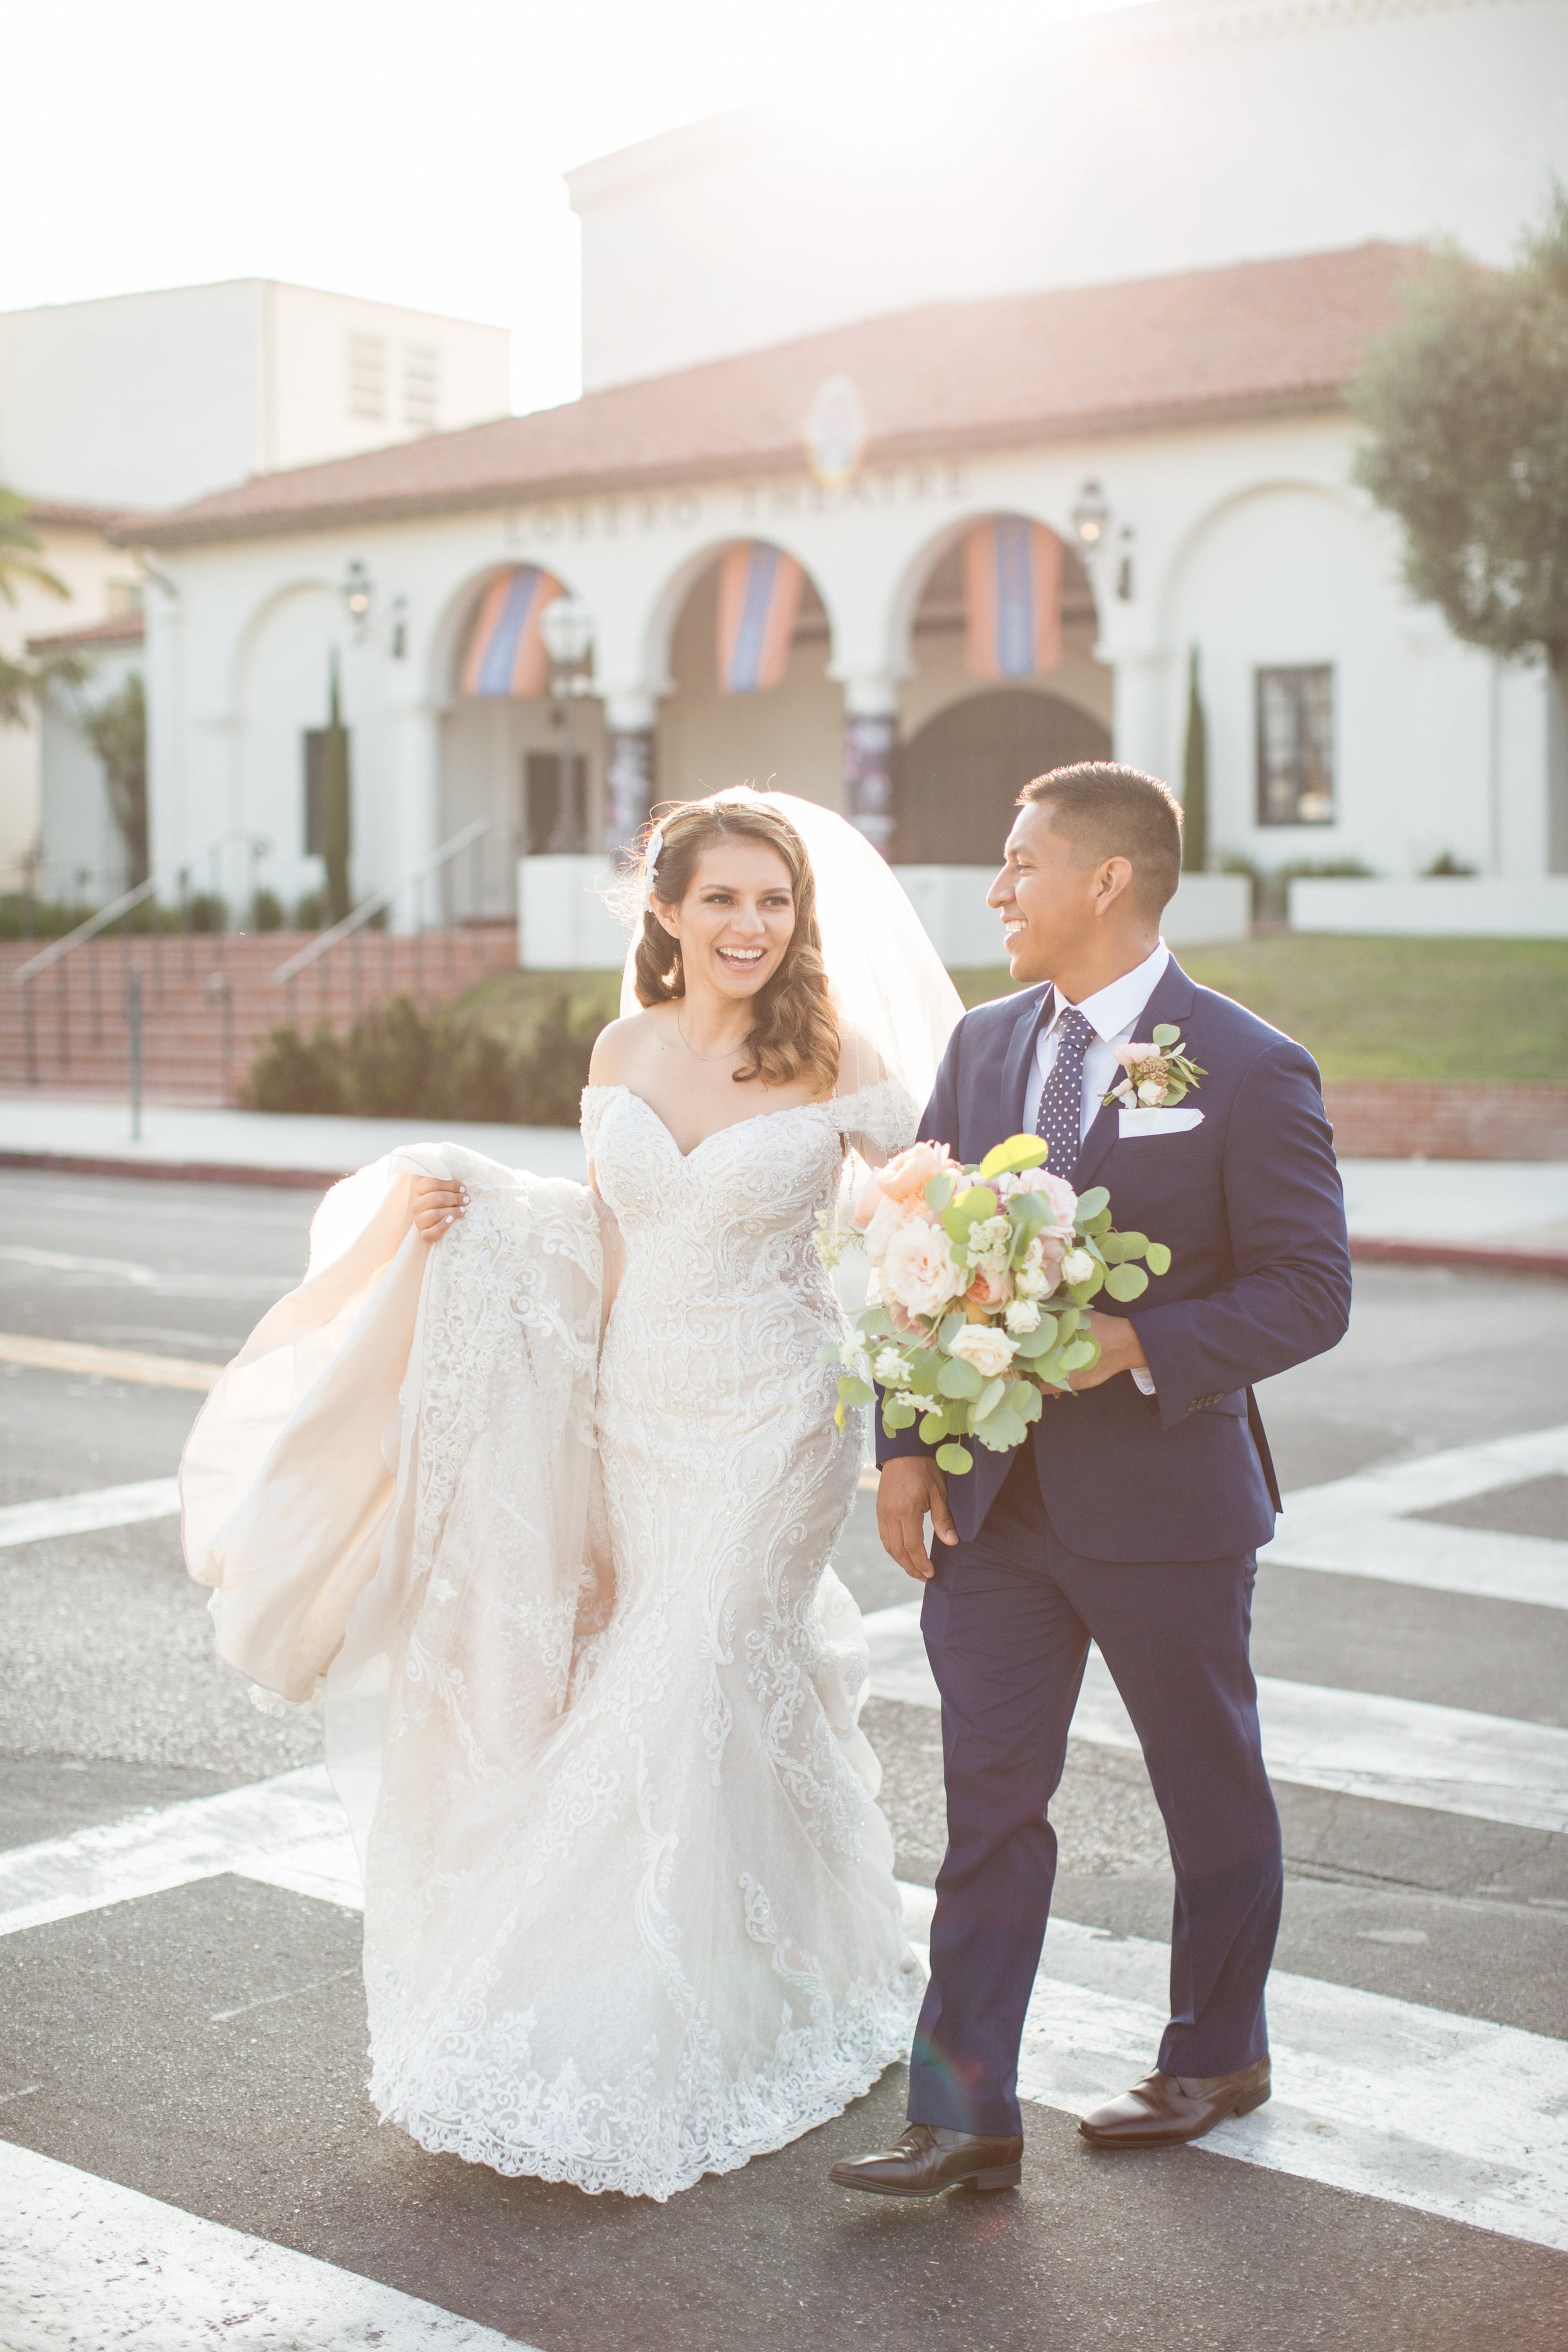 www.santbarbarawedding.com | Anna J Photography | Santa Barbara Courthouse | Selena Marie Weddings & Events for Wedding Planning | Bride and Groom Taking a Stroll